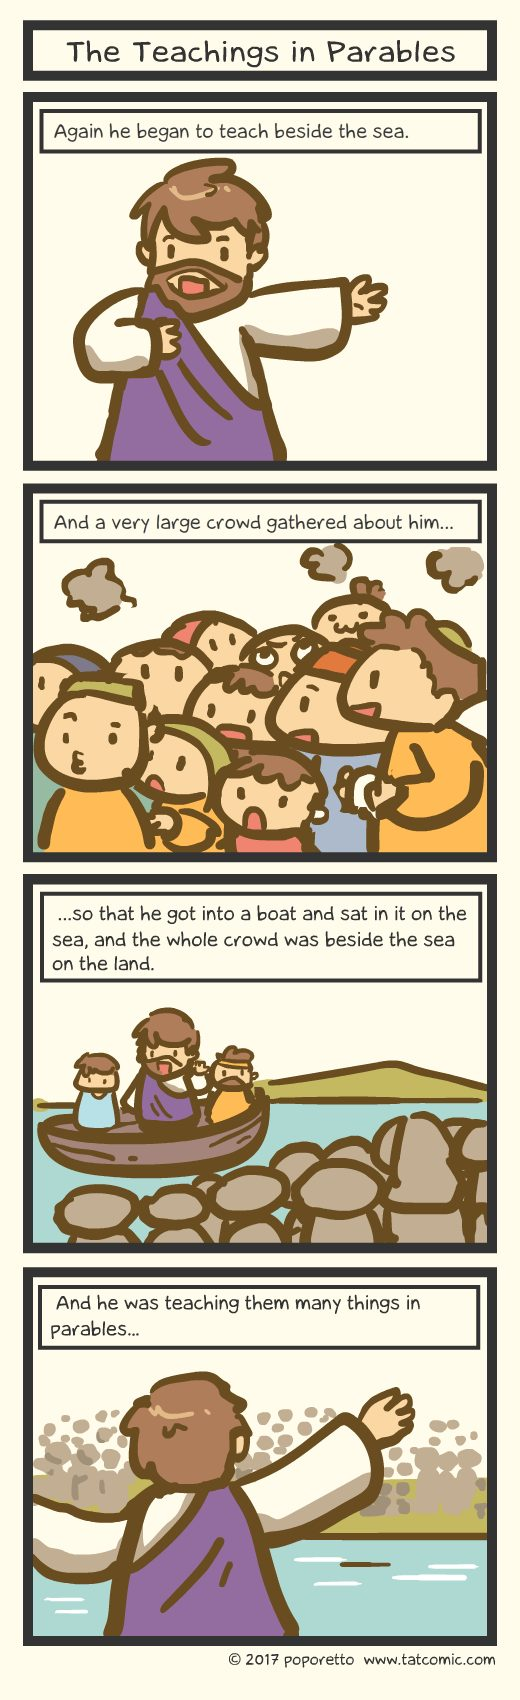 Gospel Christian comic strip jesus and the great crowd following him while jesus teaches using parables